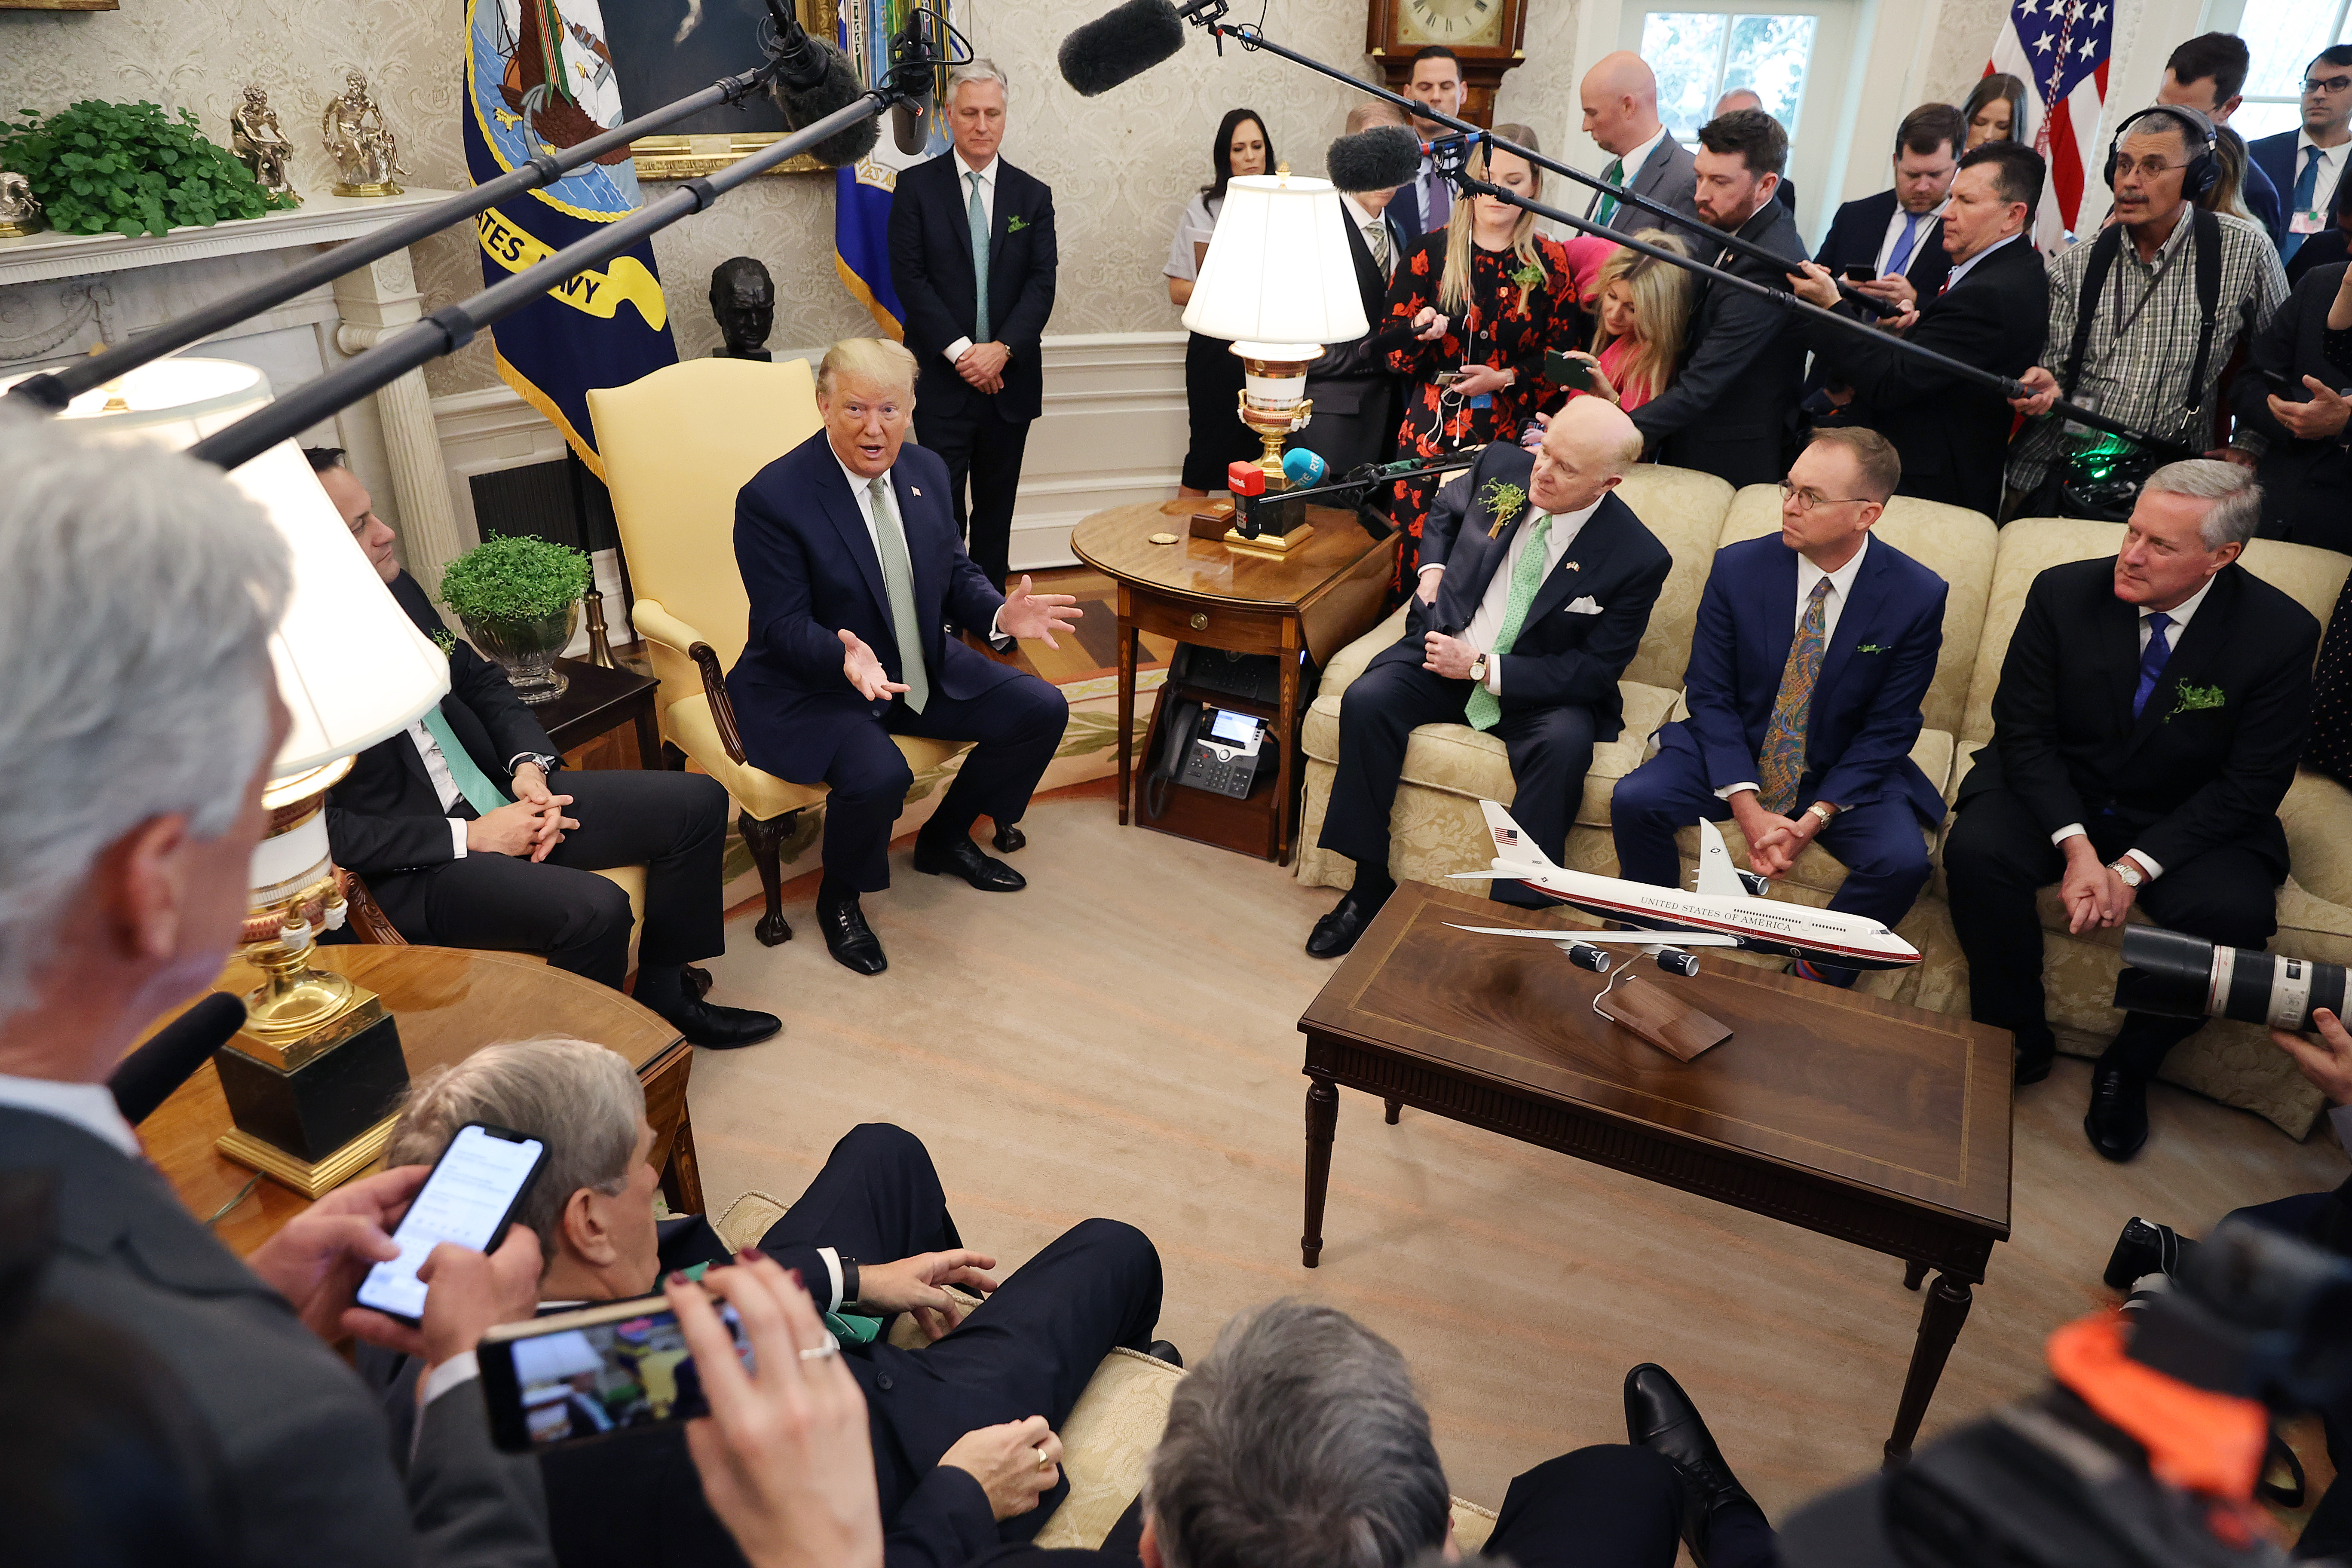 WASHINGTON, DC - MARCH 12: U.S. President Donald Trump and Prime Minister of Ireland Leo Varadkar talk to journalists before their meeting in the Oval Office at the White House March 12, 2020 in Washington, DC. Taoiseach Varadkar is in Washington for the annual celebration of St. Patrick's Day and to participate in the traditional Shamrock Bowl presentation. (Photo by Chip Somodevilla/Getty Images)